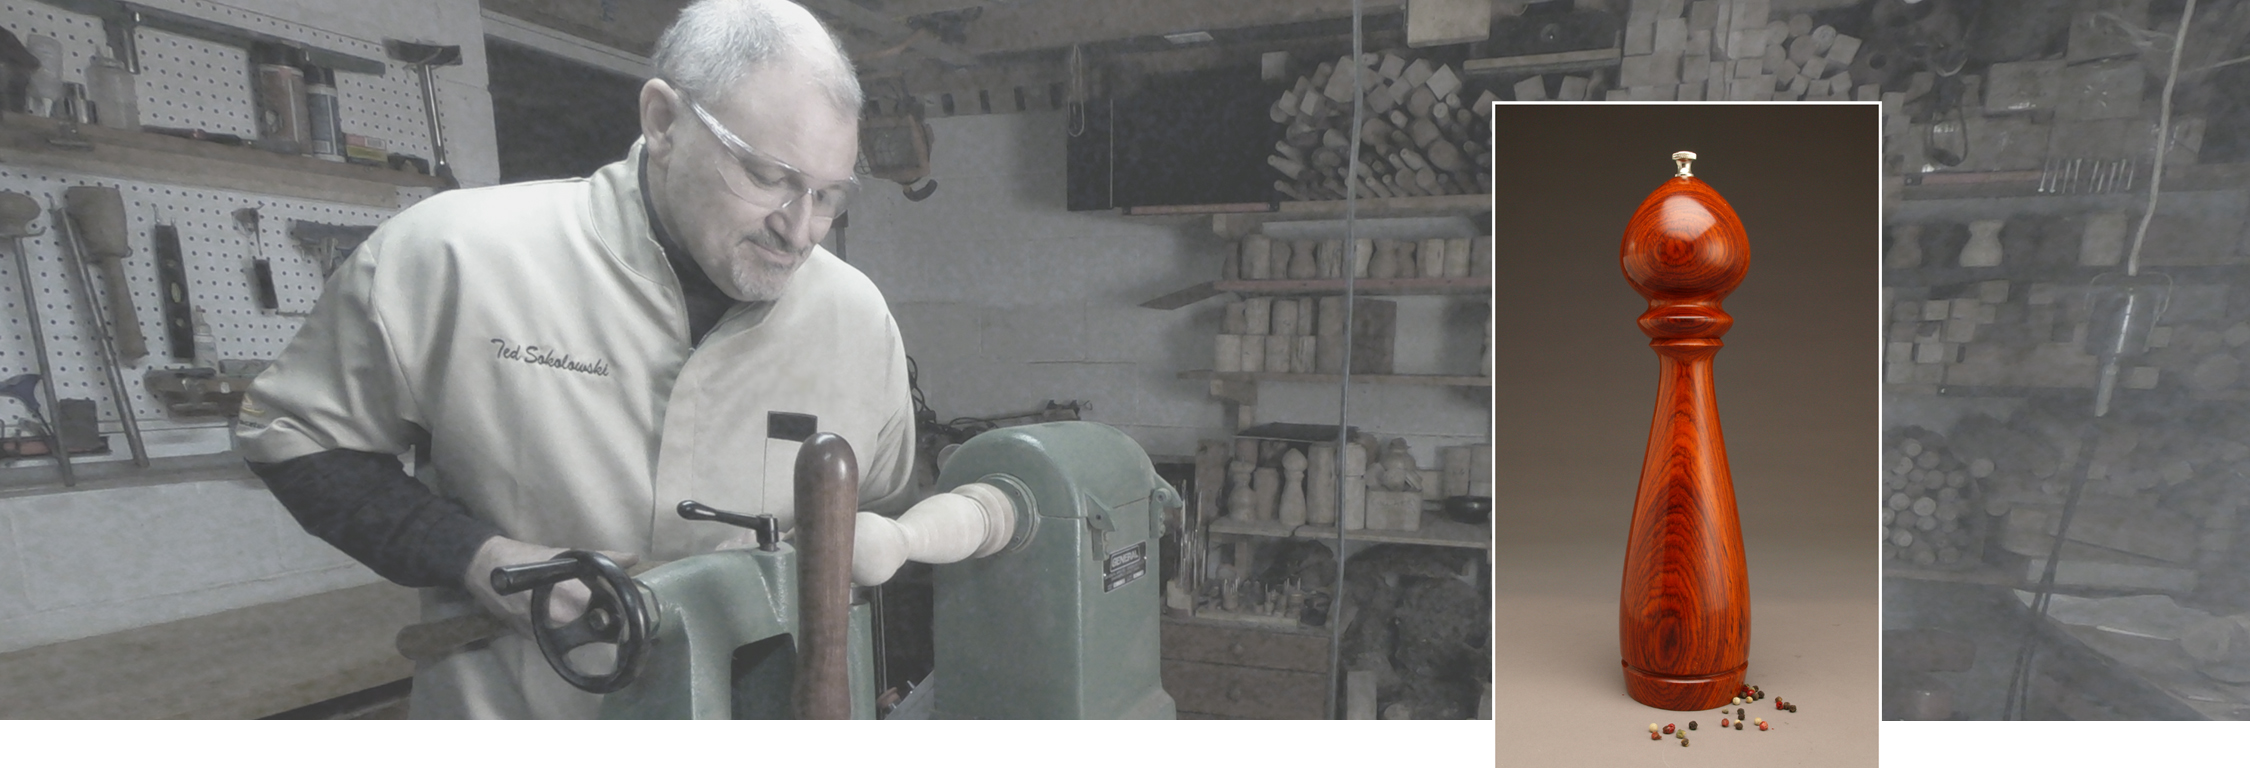 Ted Sokolowski Woodturning at lathe